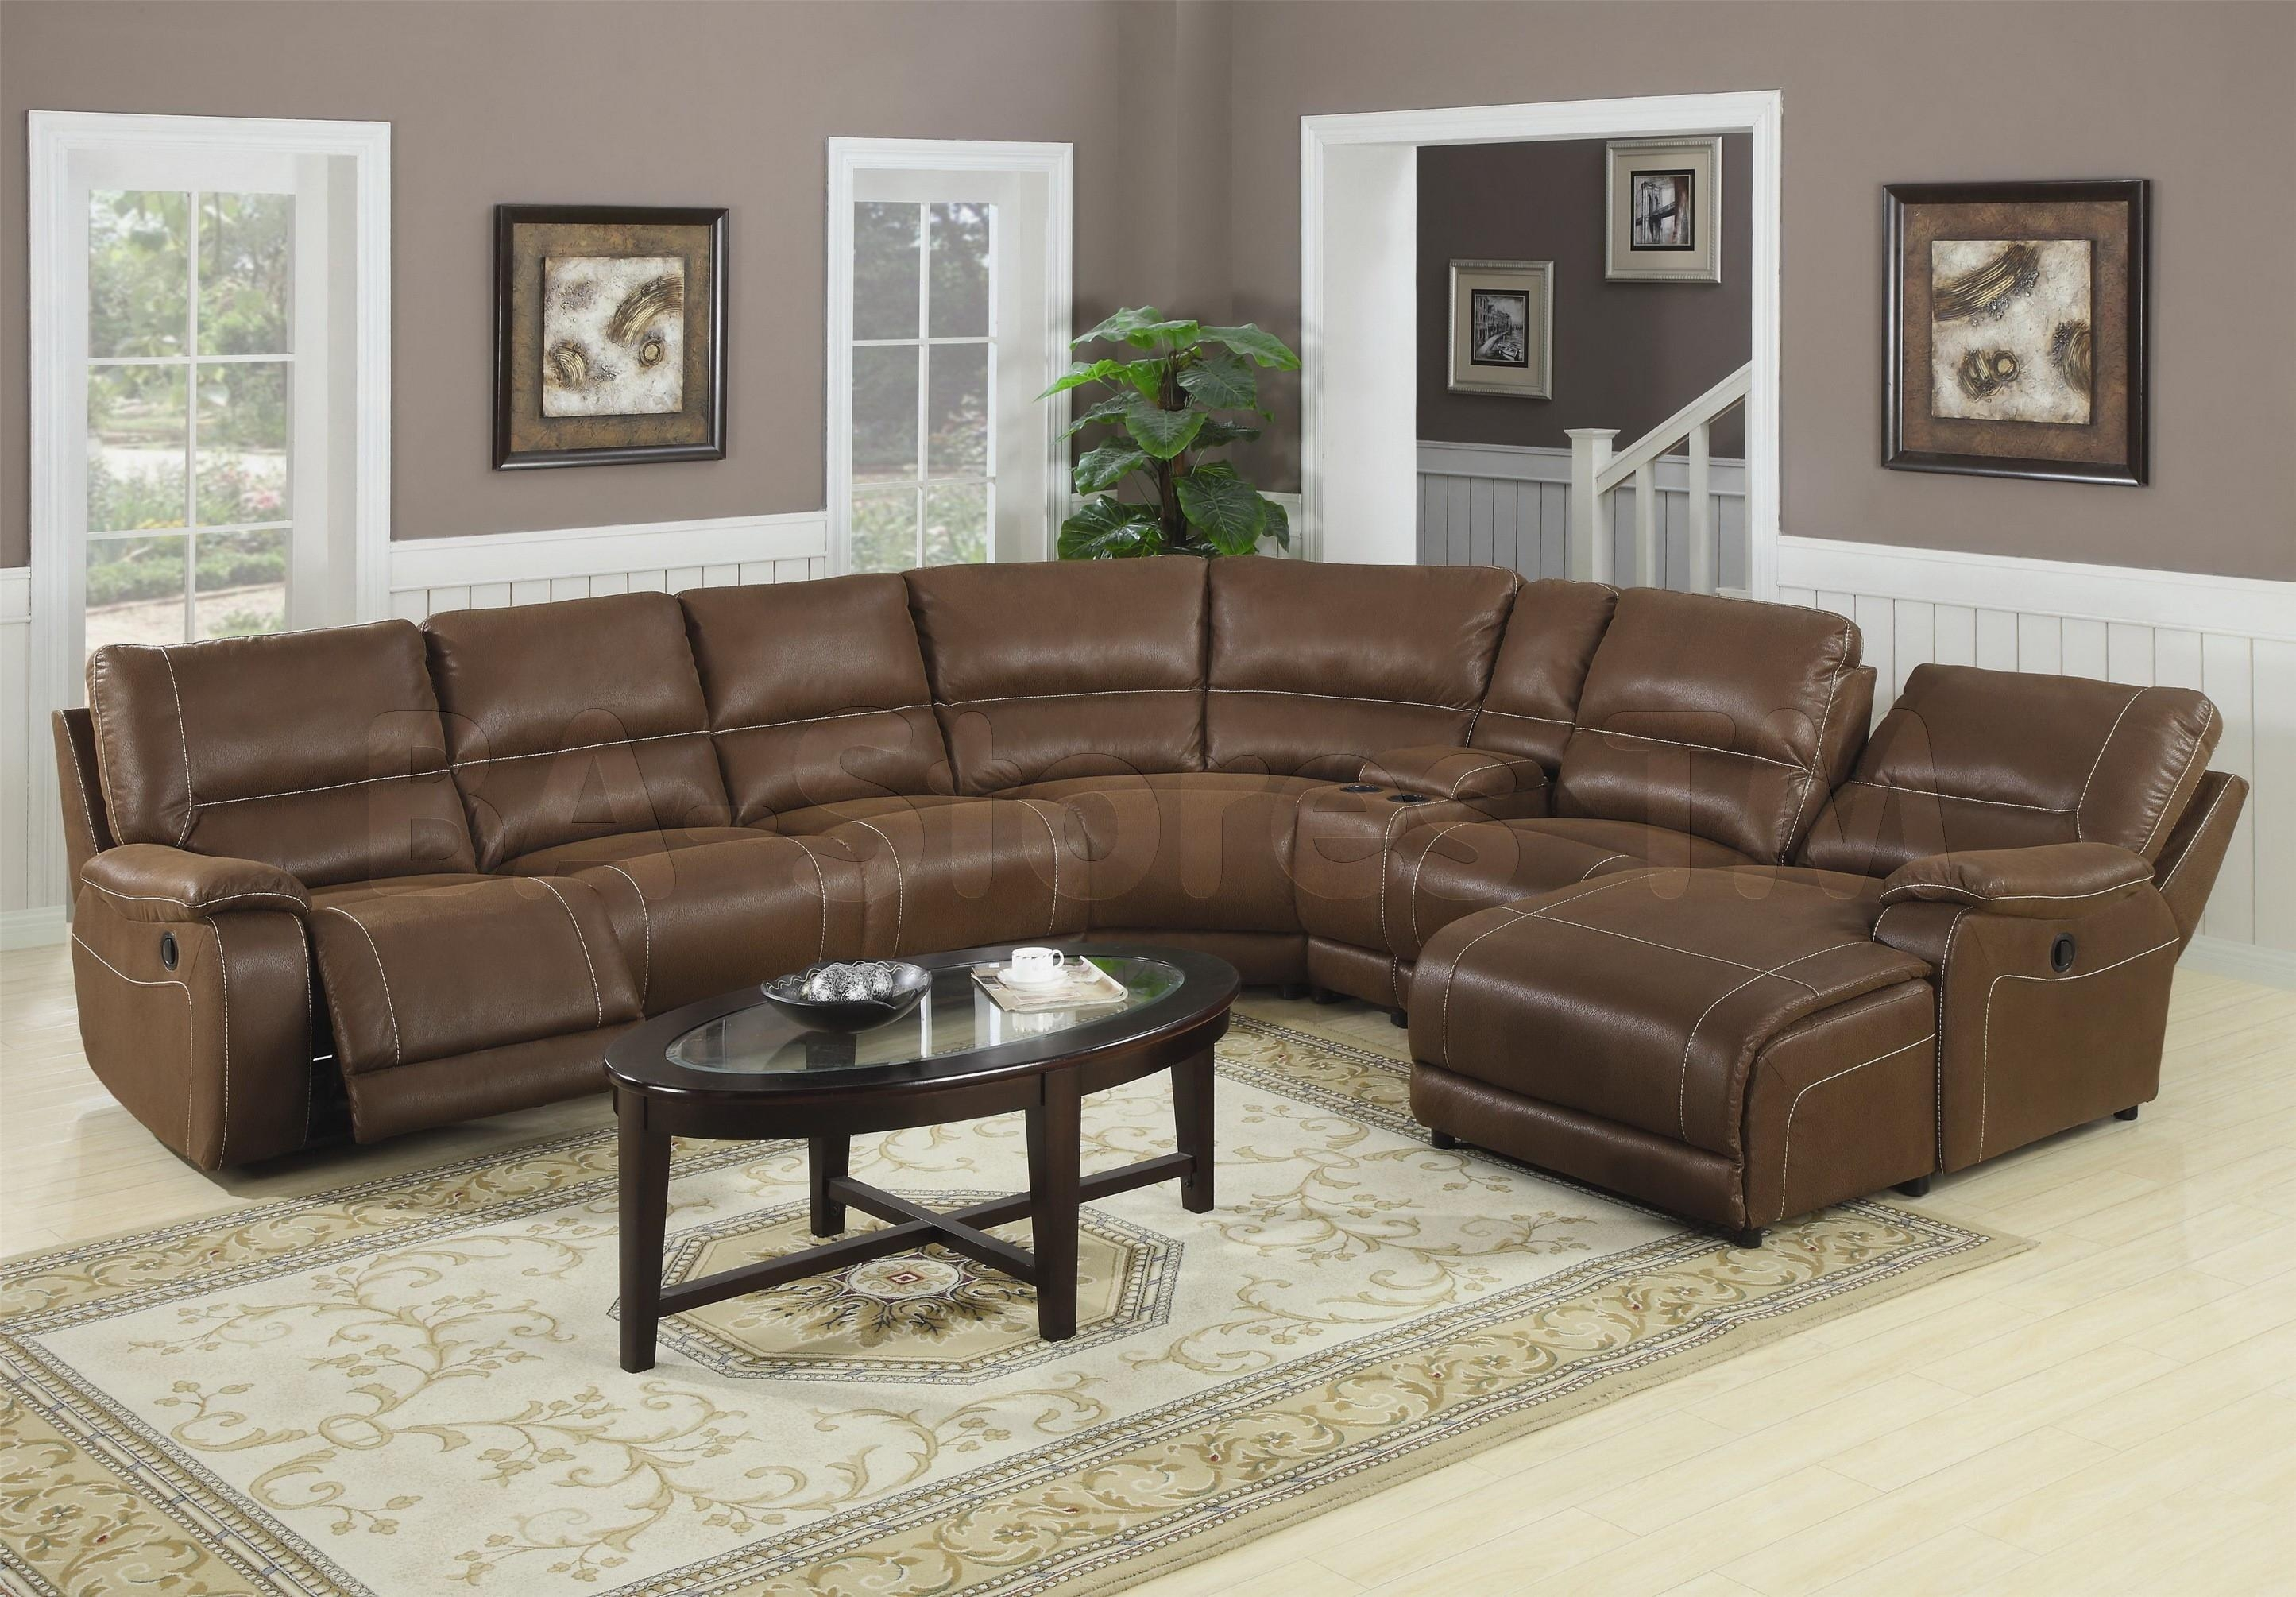 Soft Brown Leather Sectional Sofa | Tehranmix Decoration Pertaining To Suede Sectionals (Image 19 of 20)